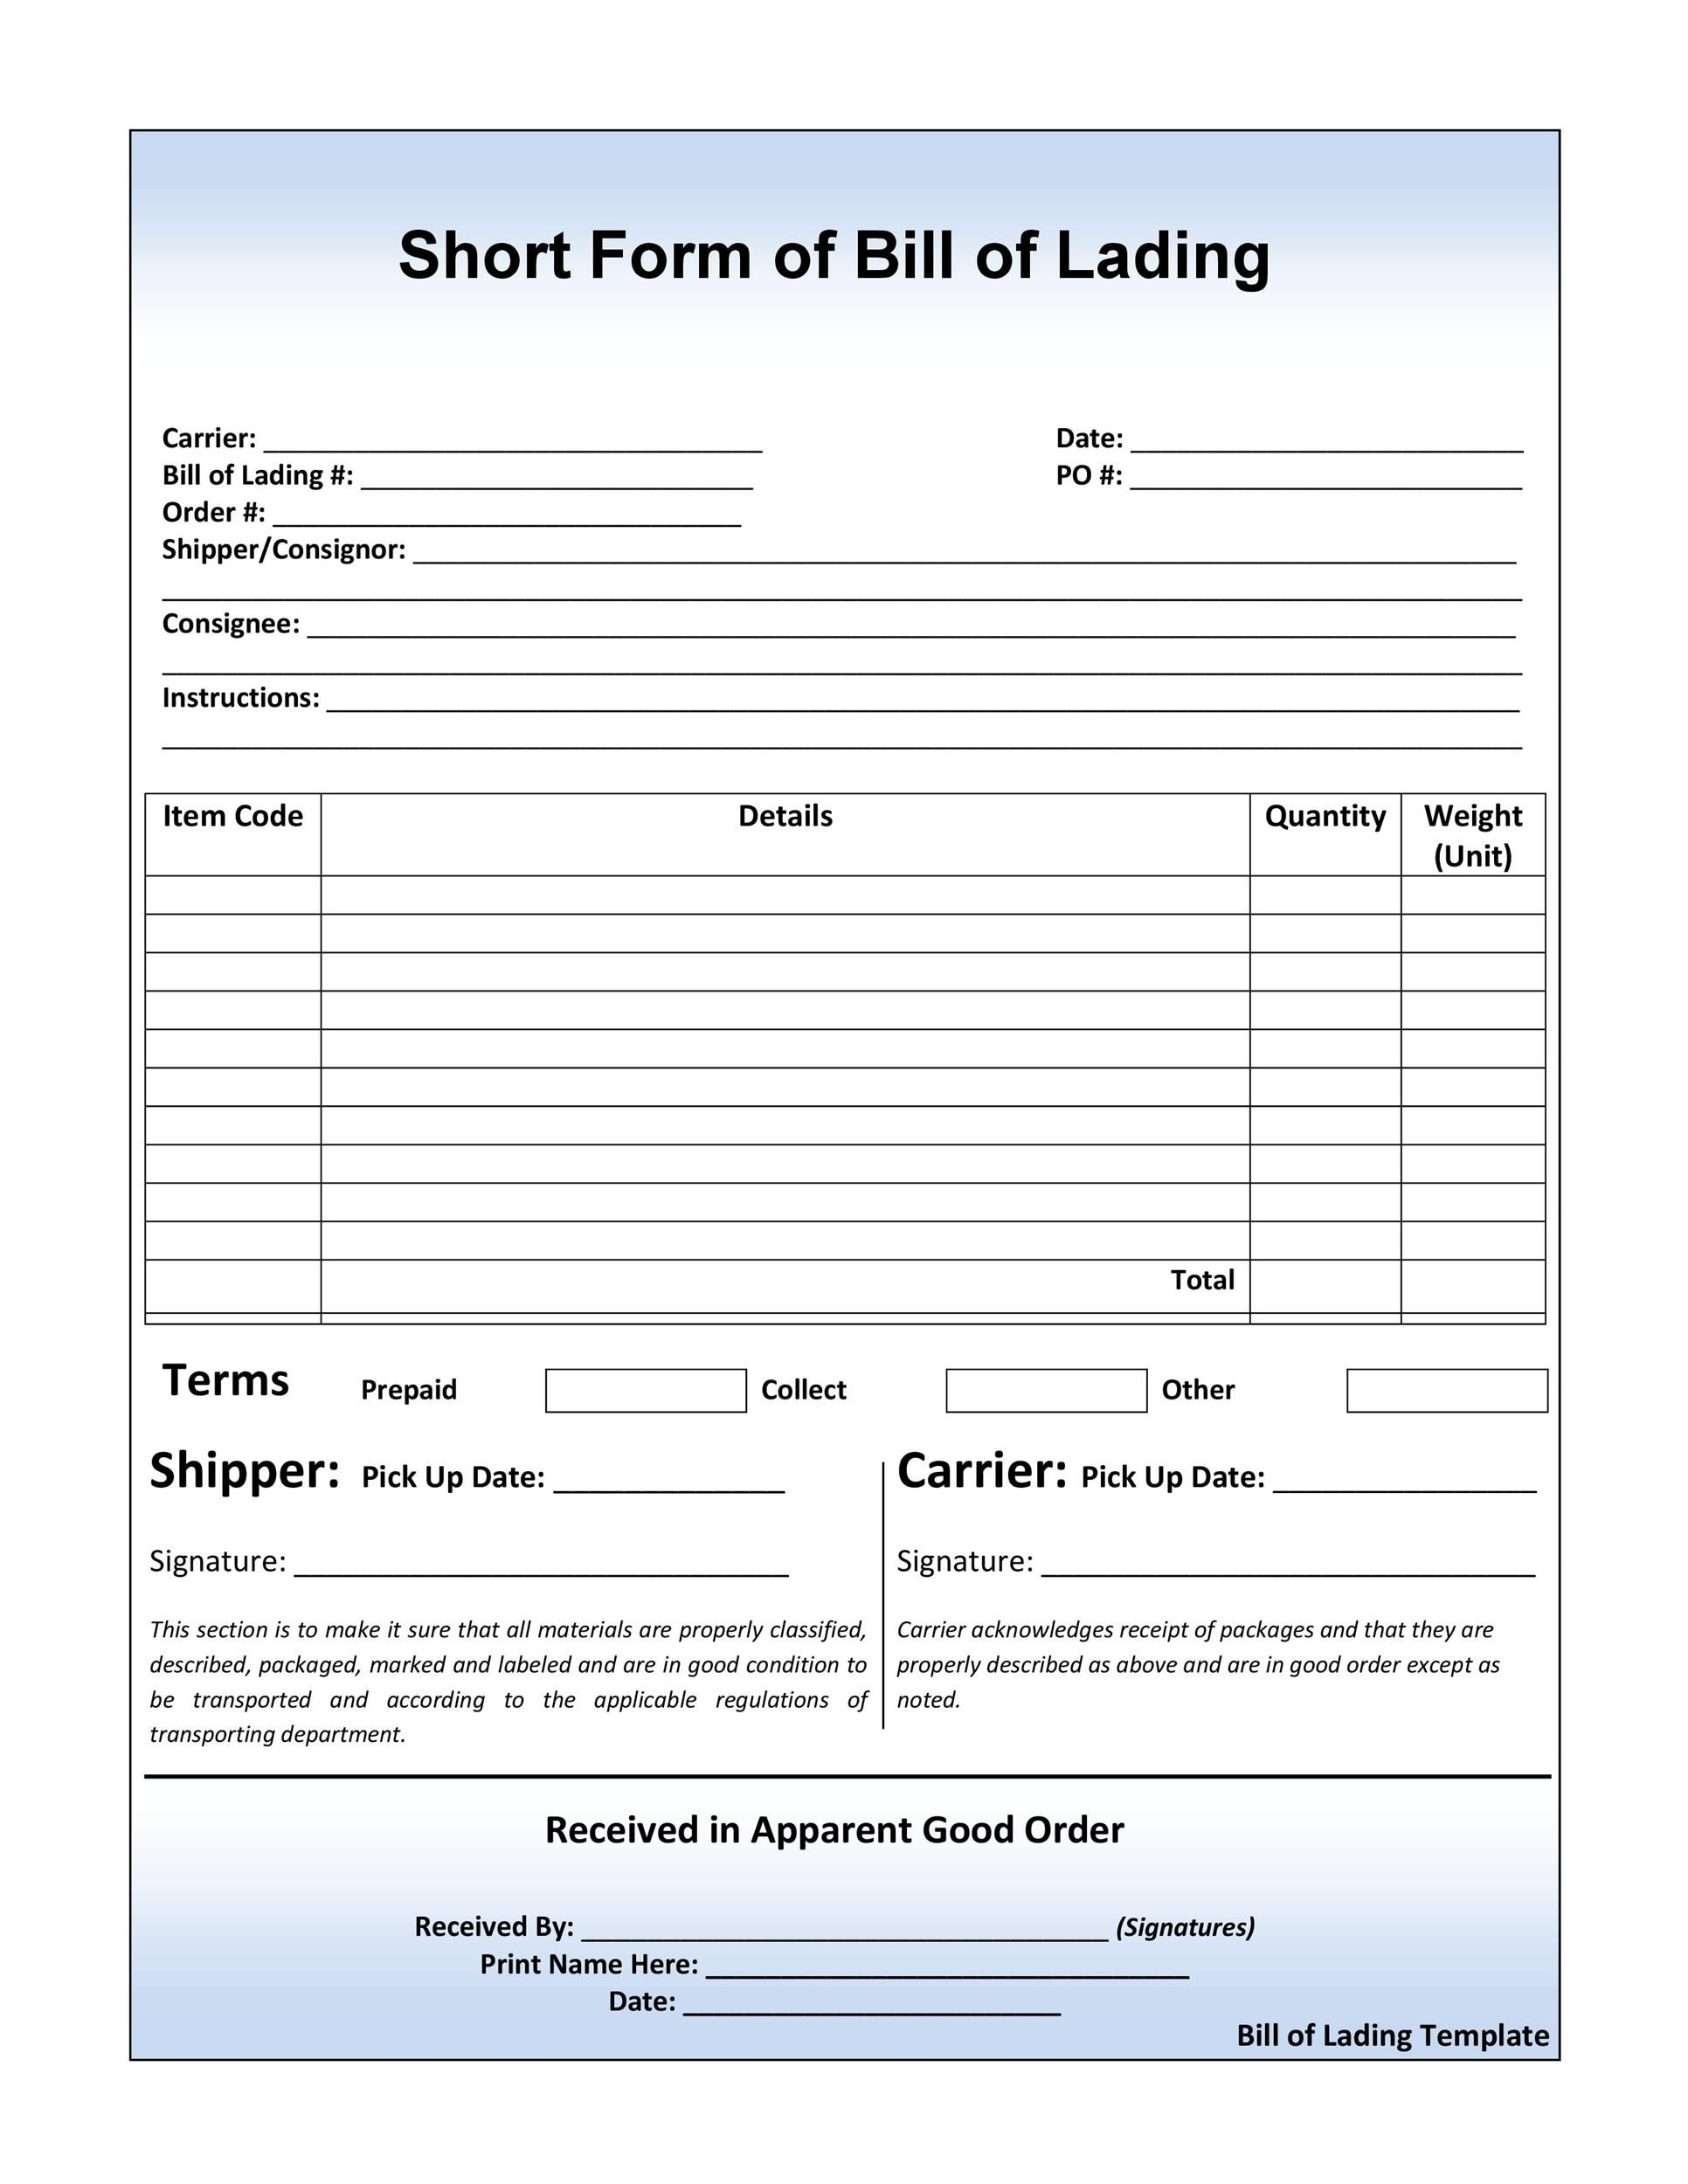 008 Marvelou Bill Of Lading Short Form Template Word Image Full